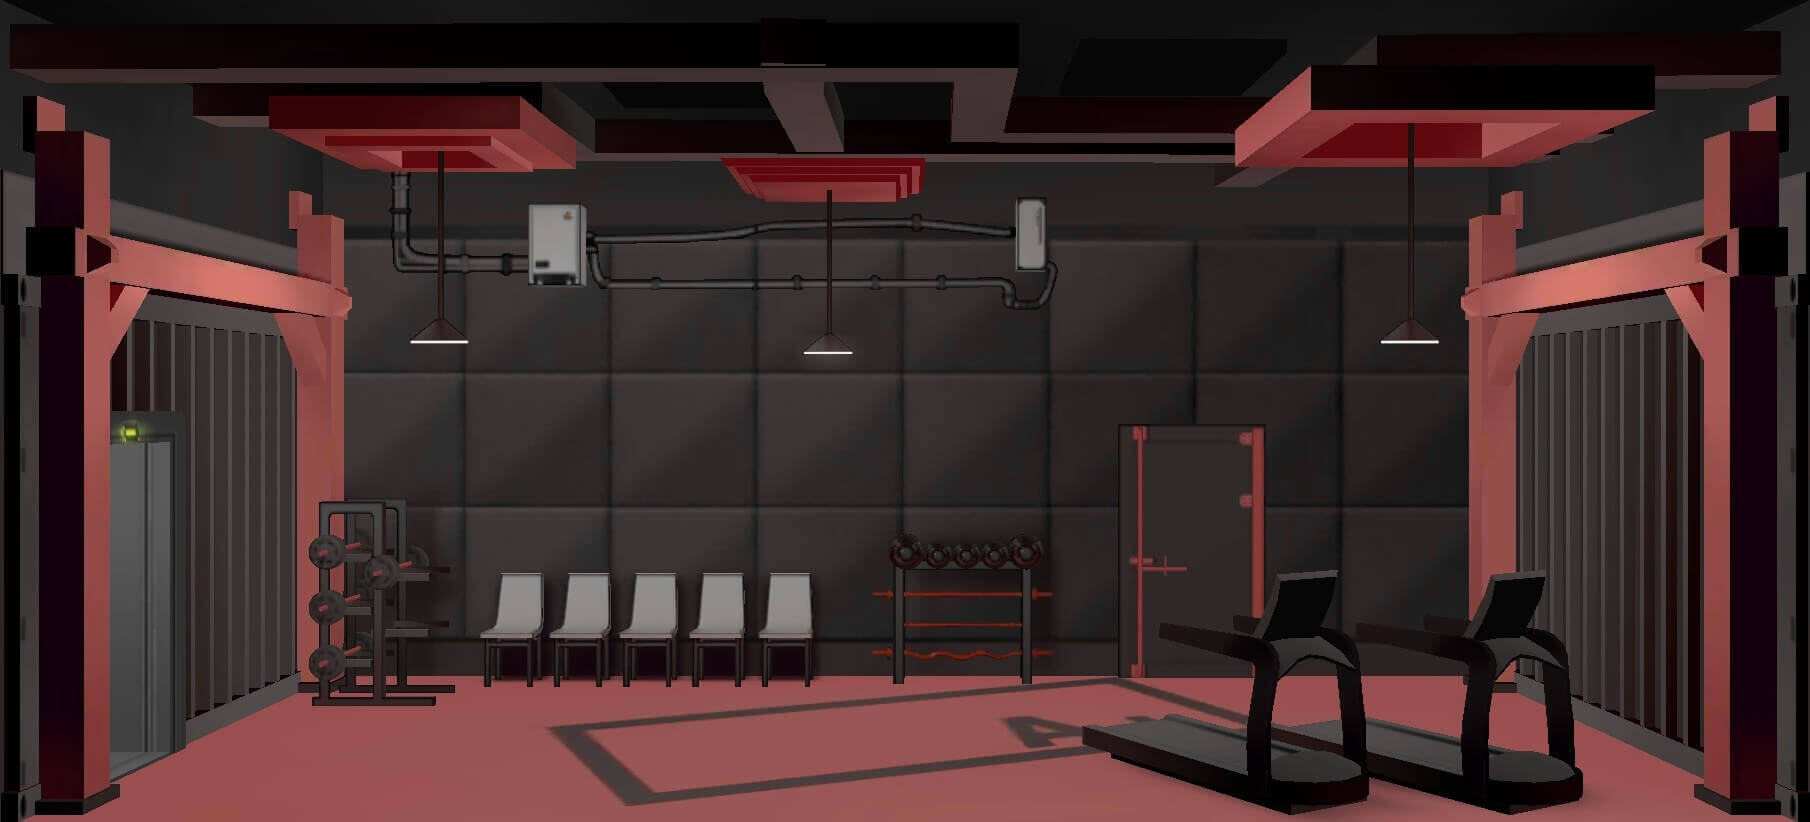 Arknights Training Room